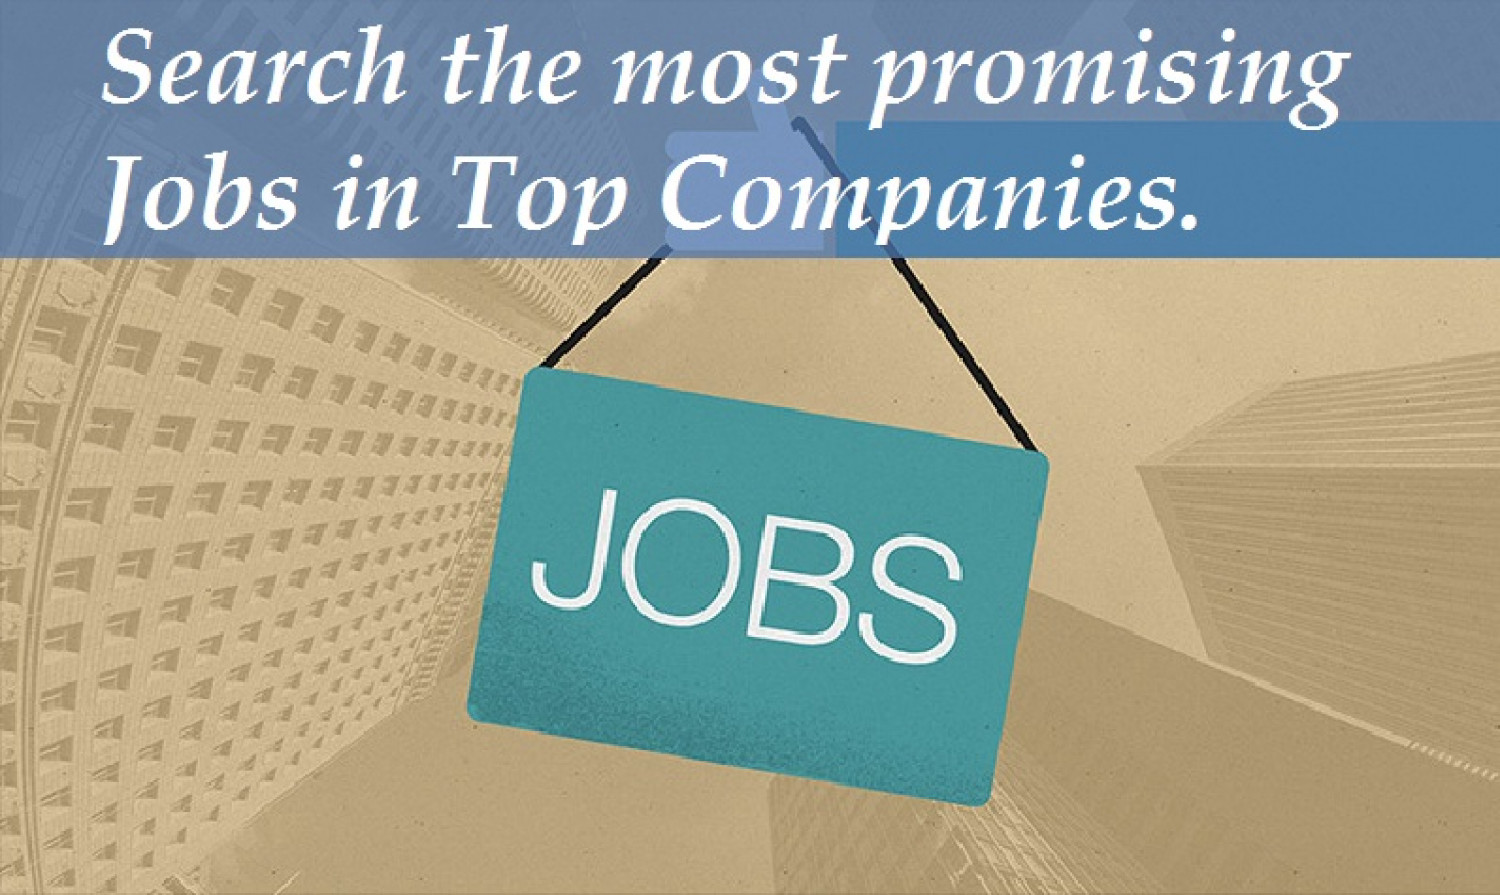 Search the most promising Jobs in Top Companies. Infographic